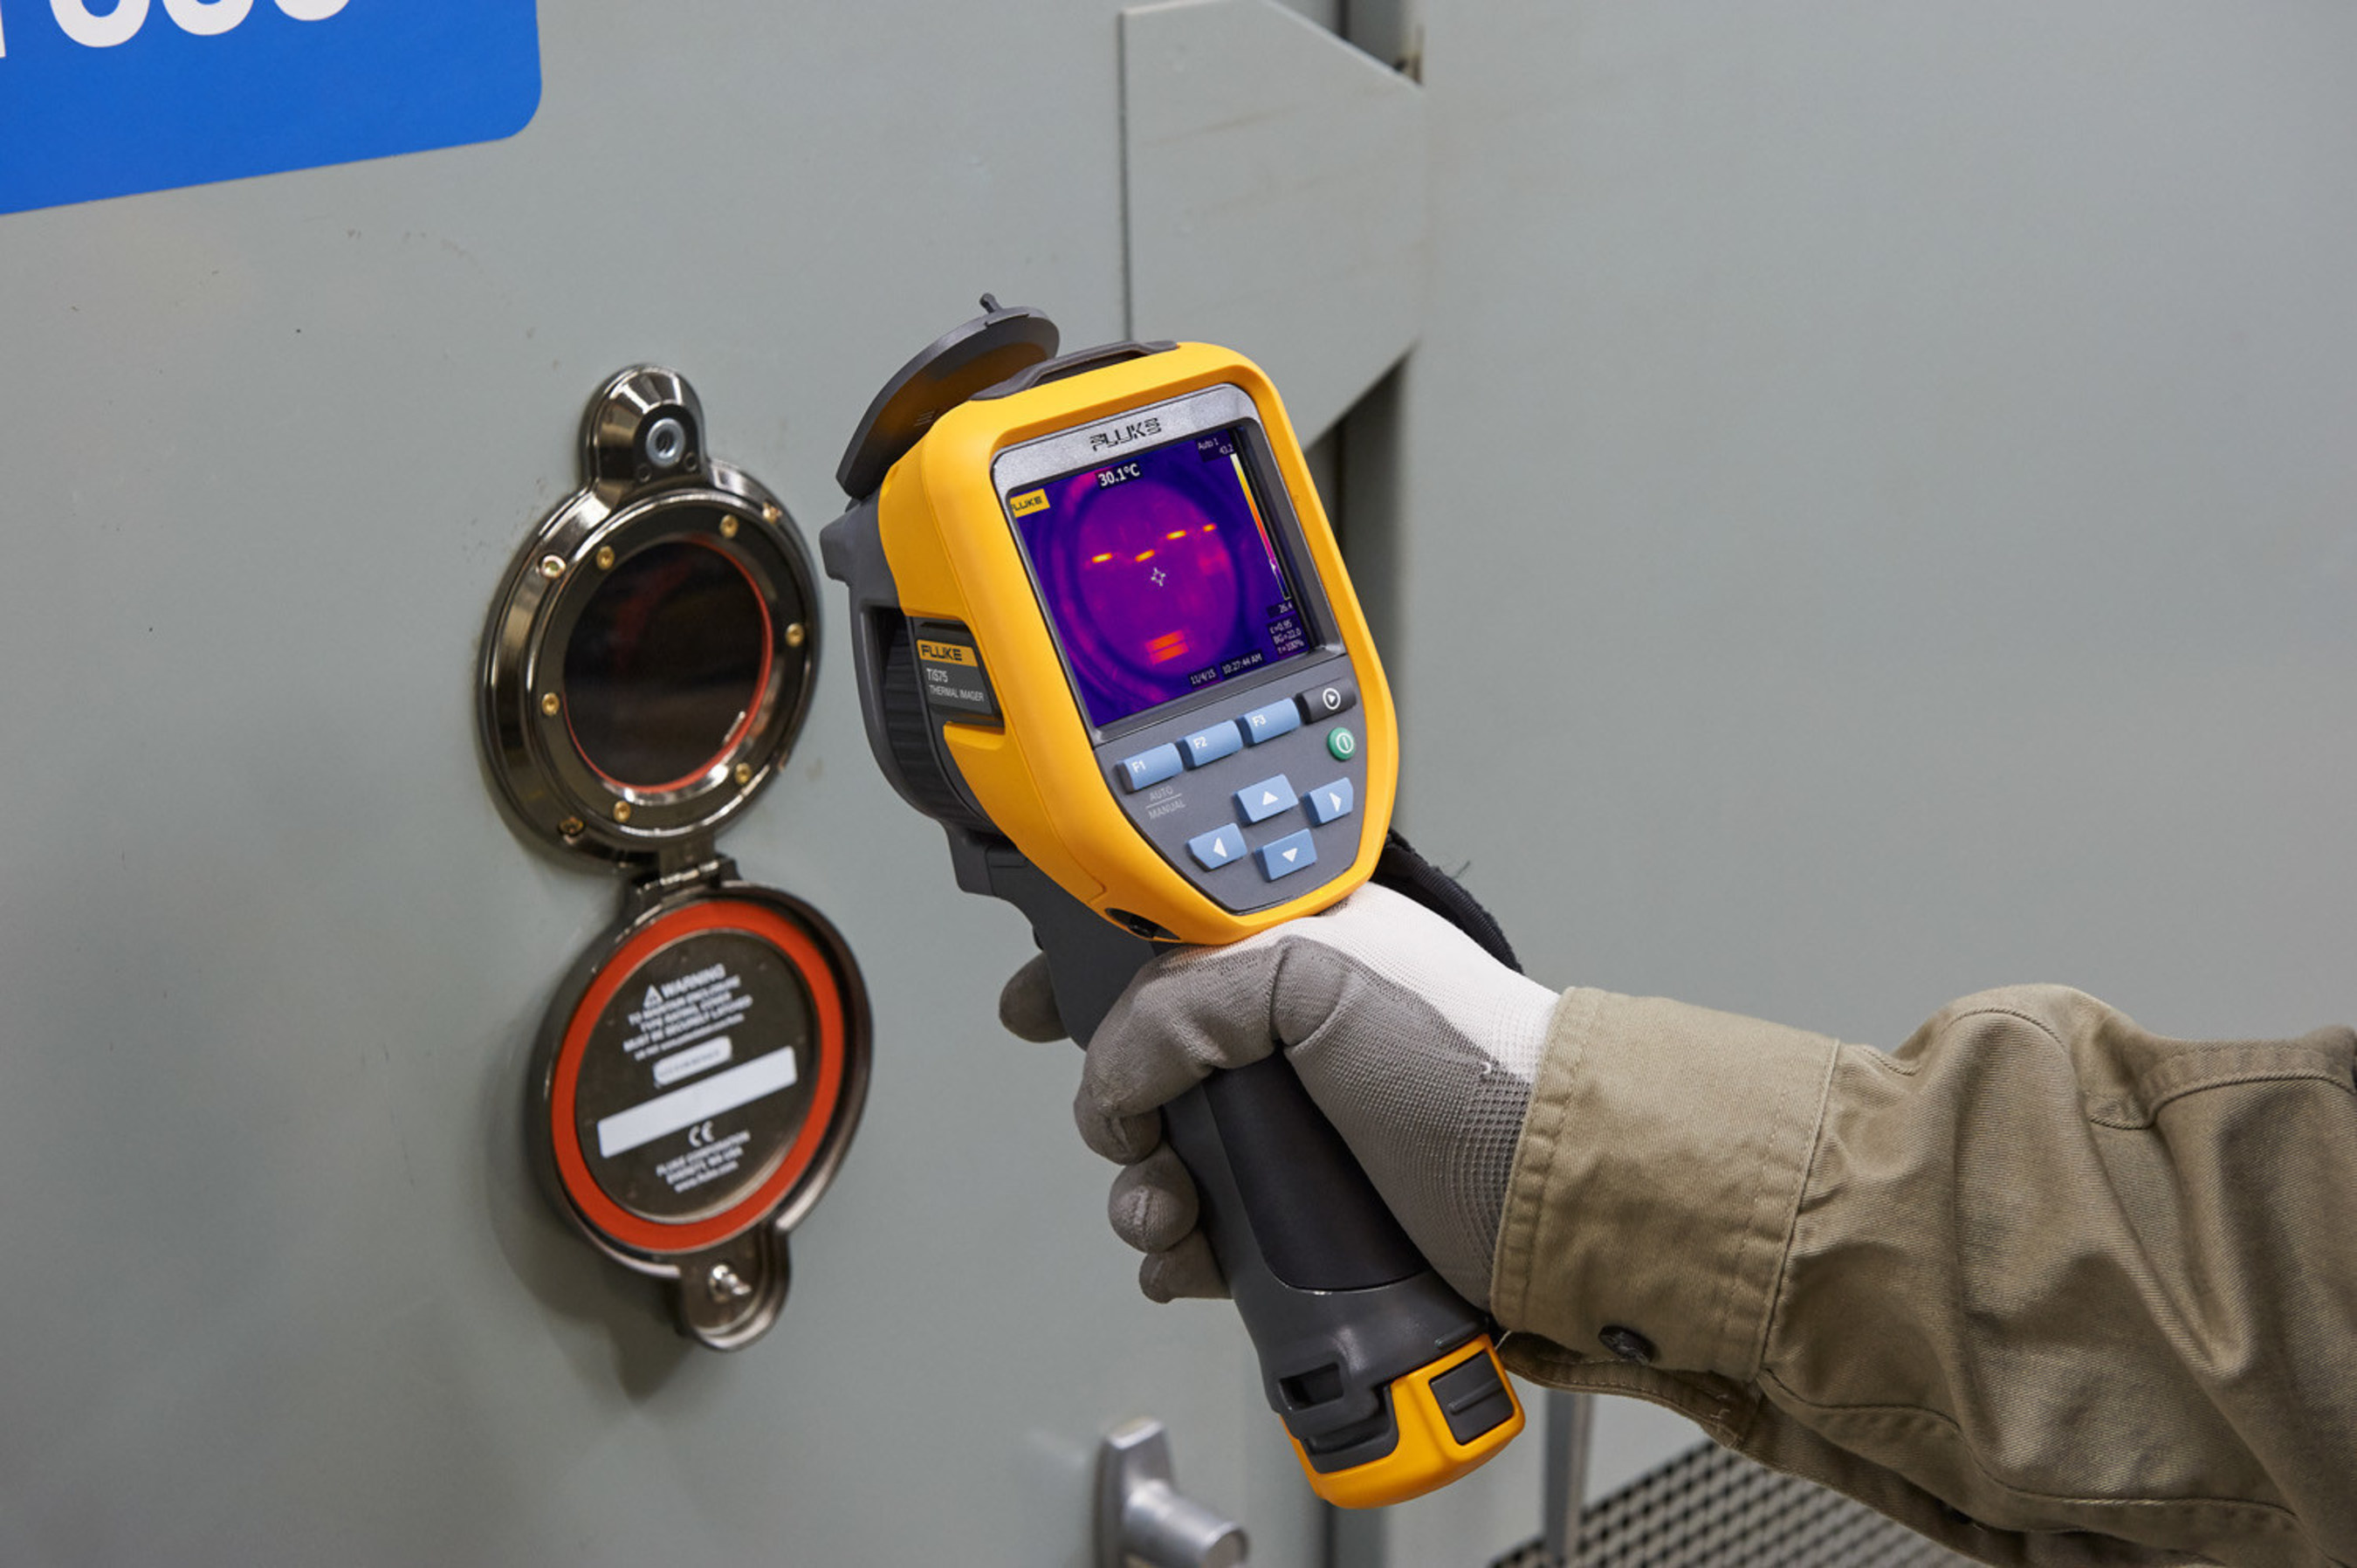 Fluke TiS75 Infrared Camera picks up small details to quickly identify and resolve issues with equipment